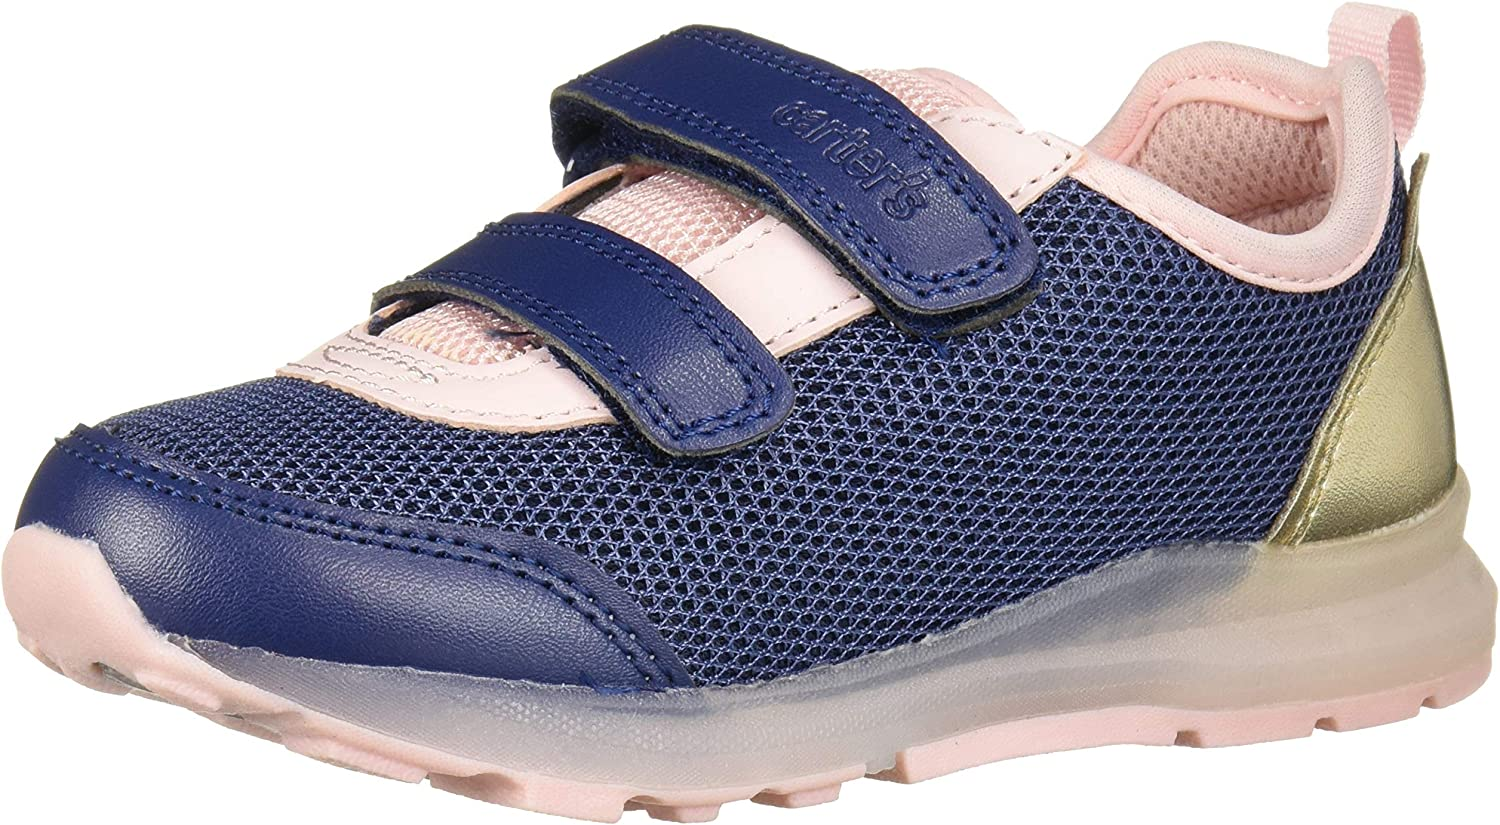 Carter's Kids' Boston Mall Courier shipping free shipping Fun2-g Lighted Sneaker